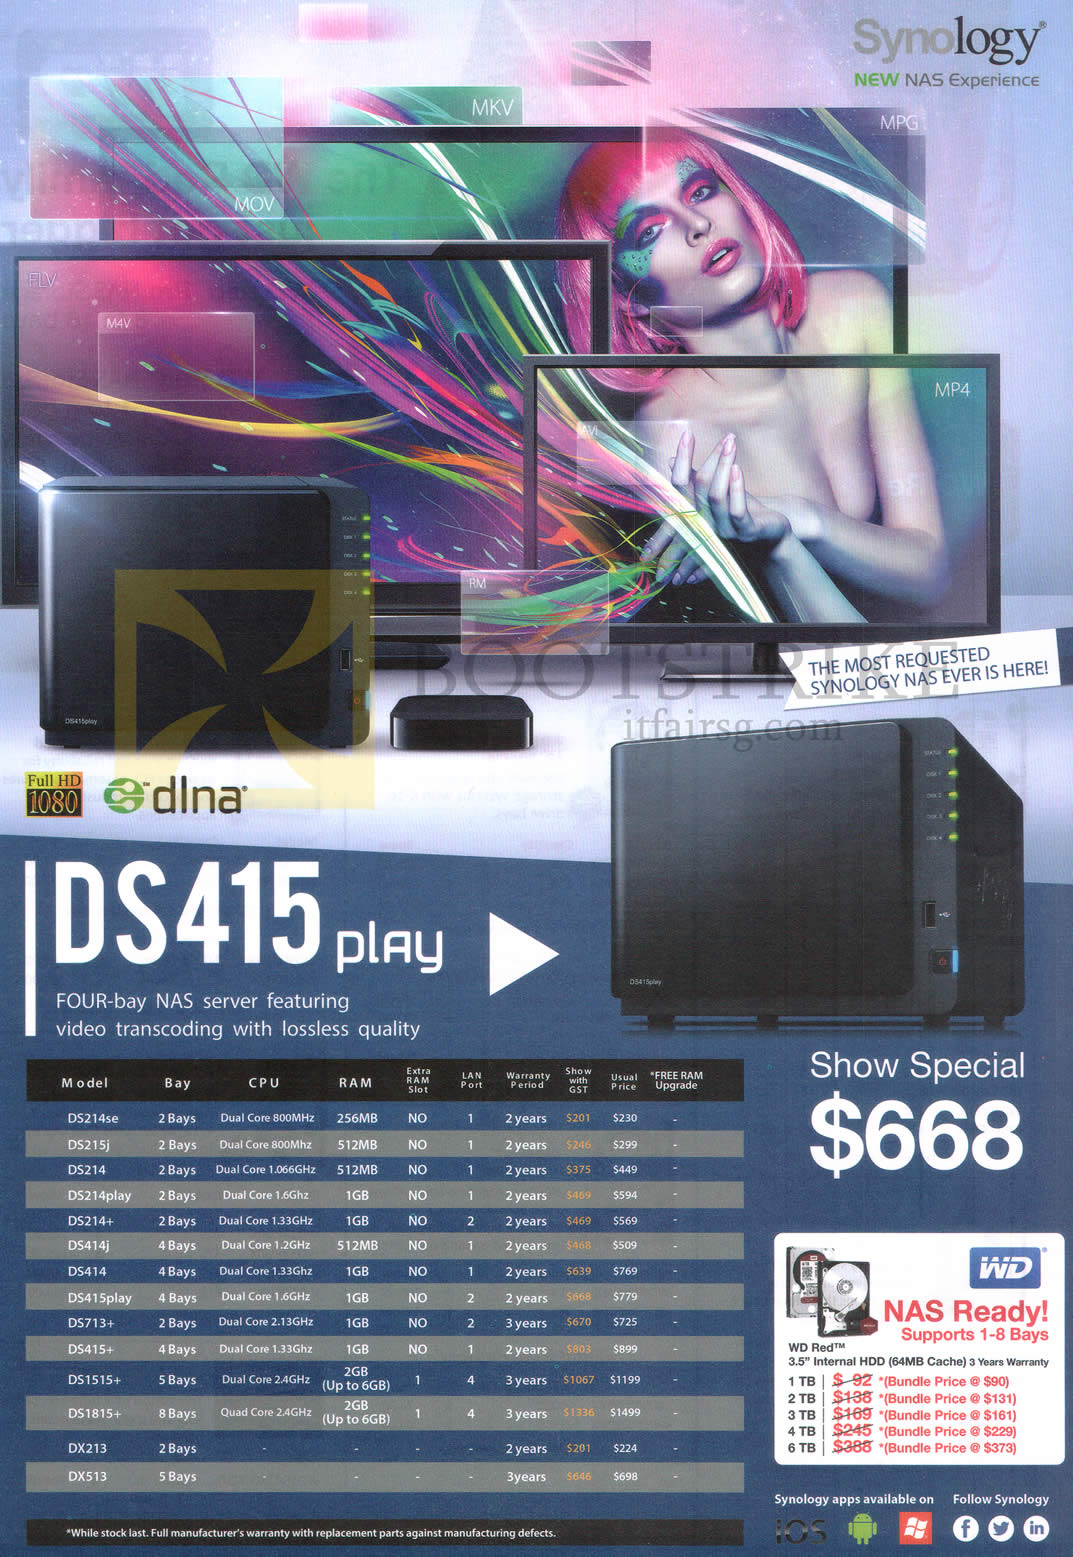 SITEX 2014 price list image brochure of Synology NAS DS415 Play